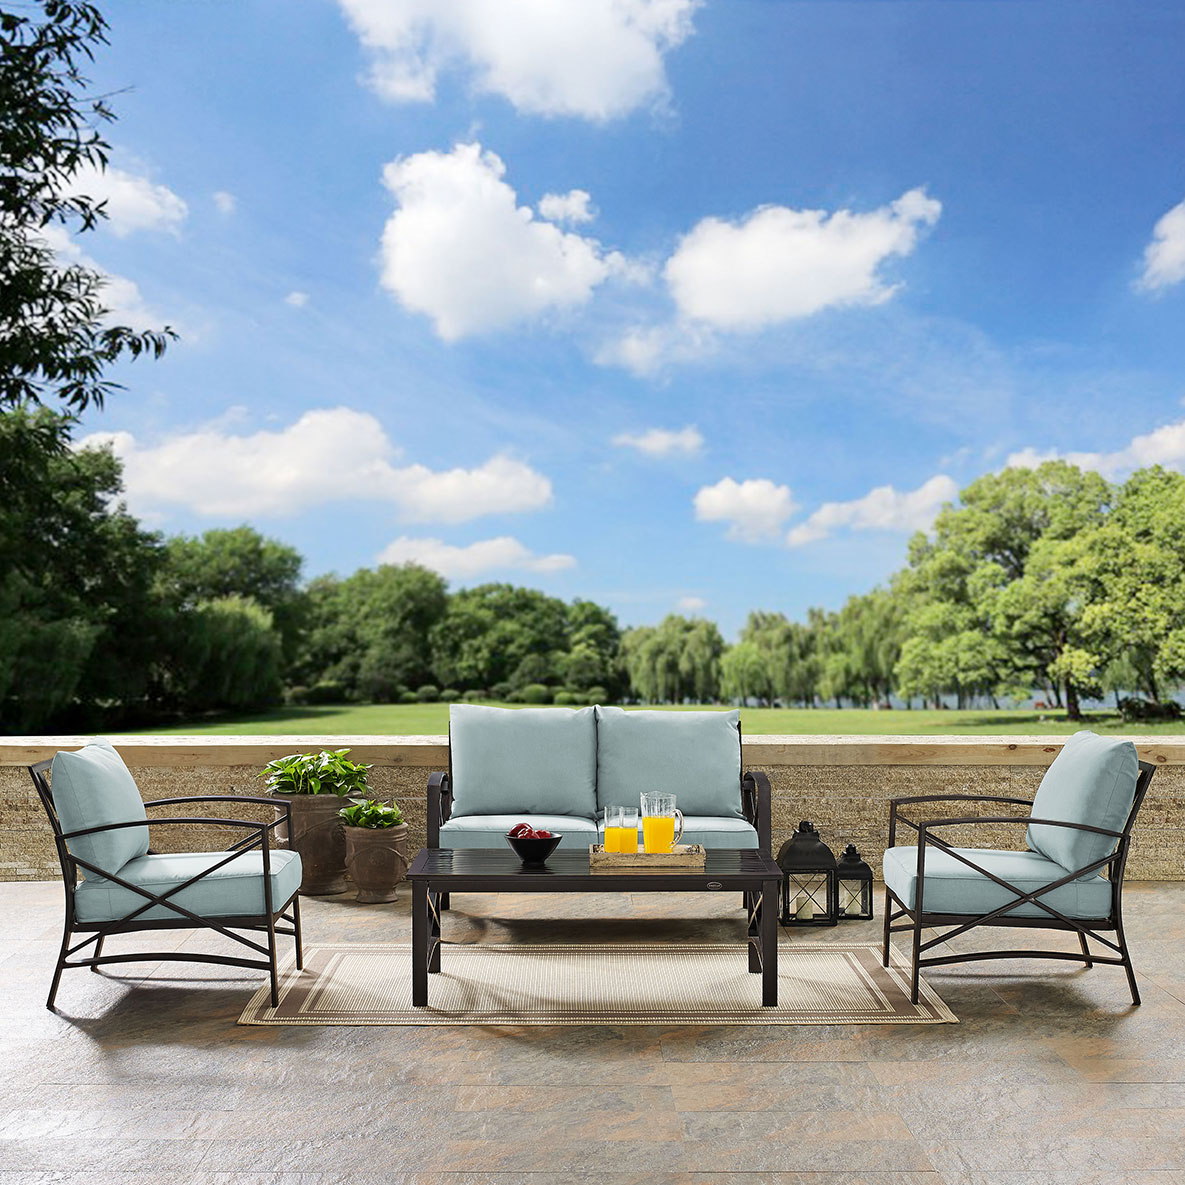 The Clarion Outdoor Collection